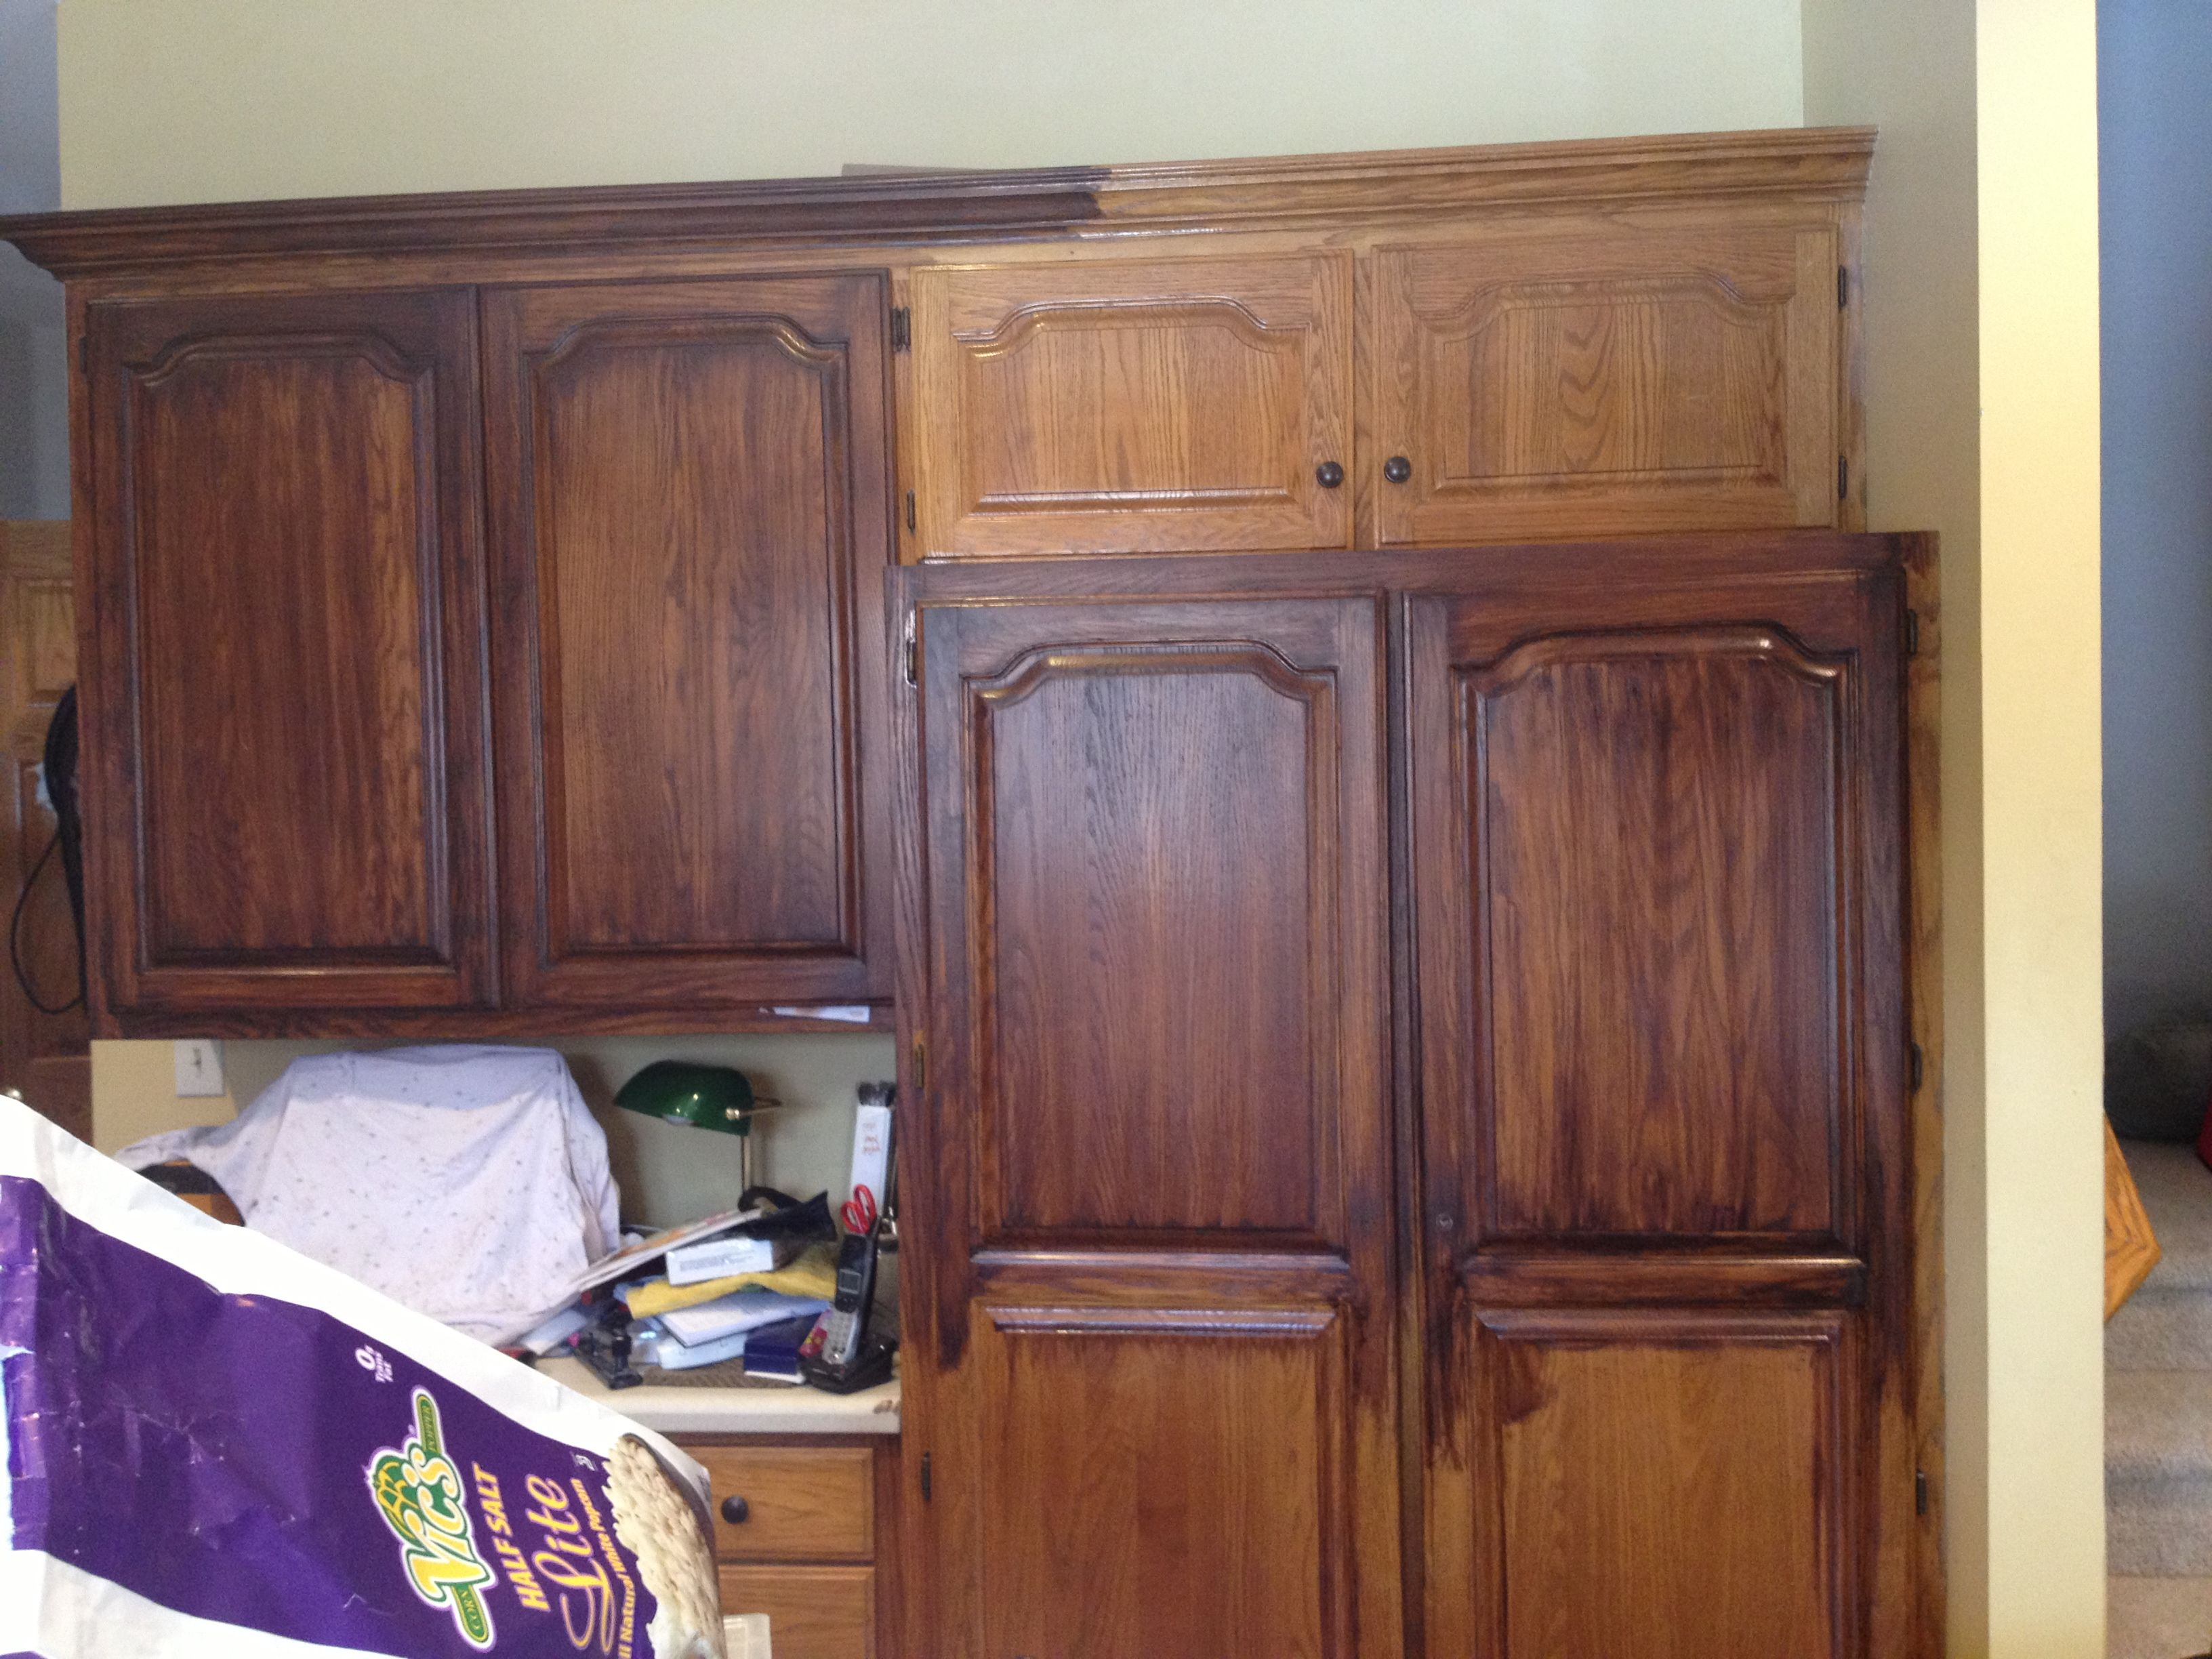 Java Stained Kitchen Cabinets General Finishes Antique Walnut And Java Gel Stains | My